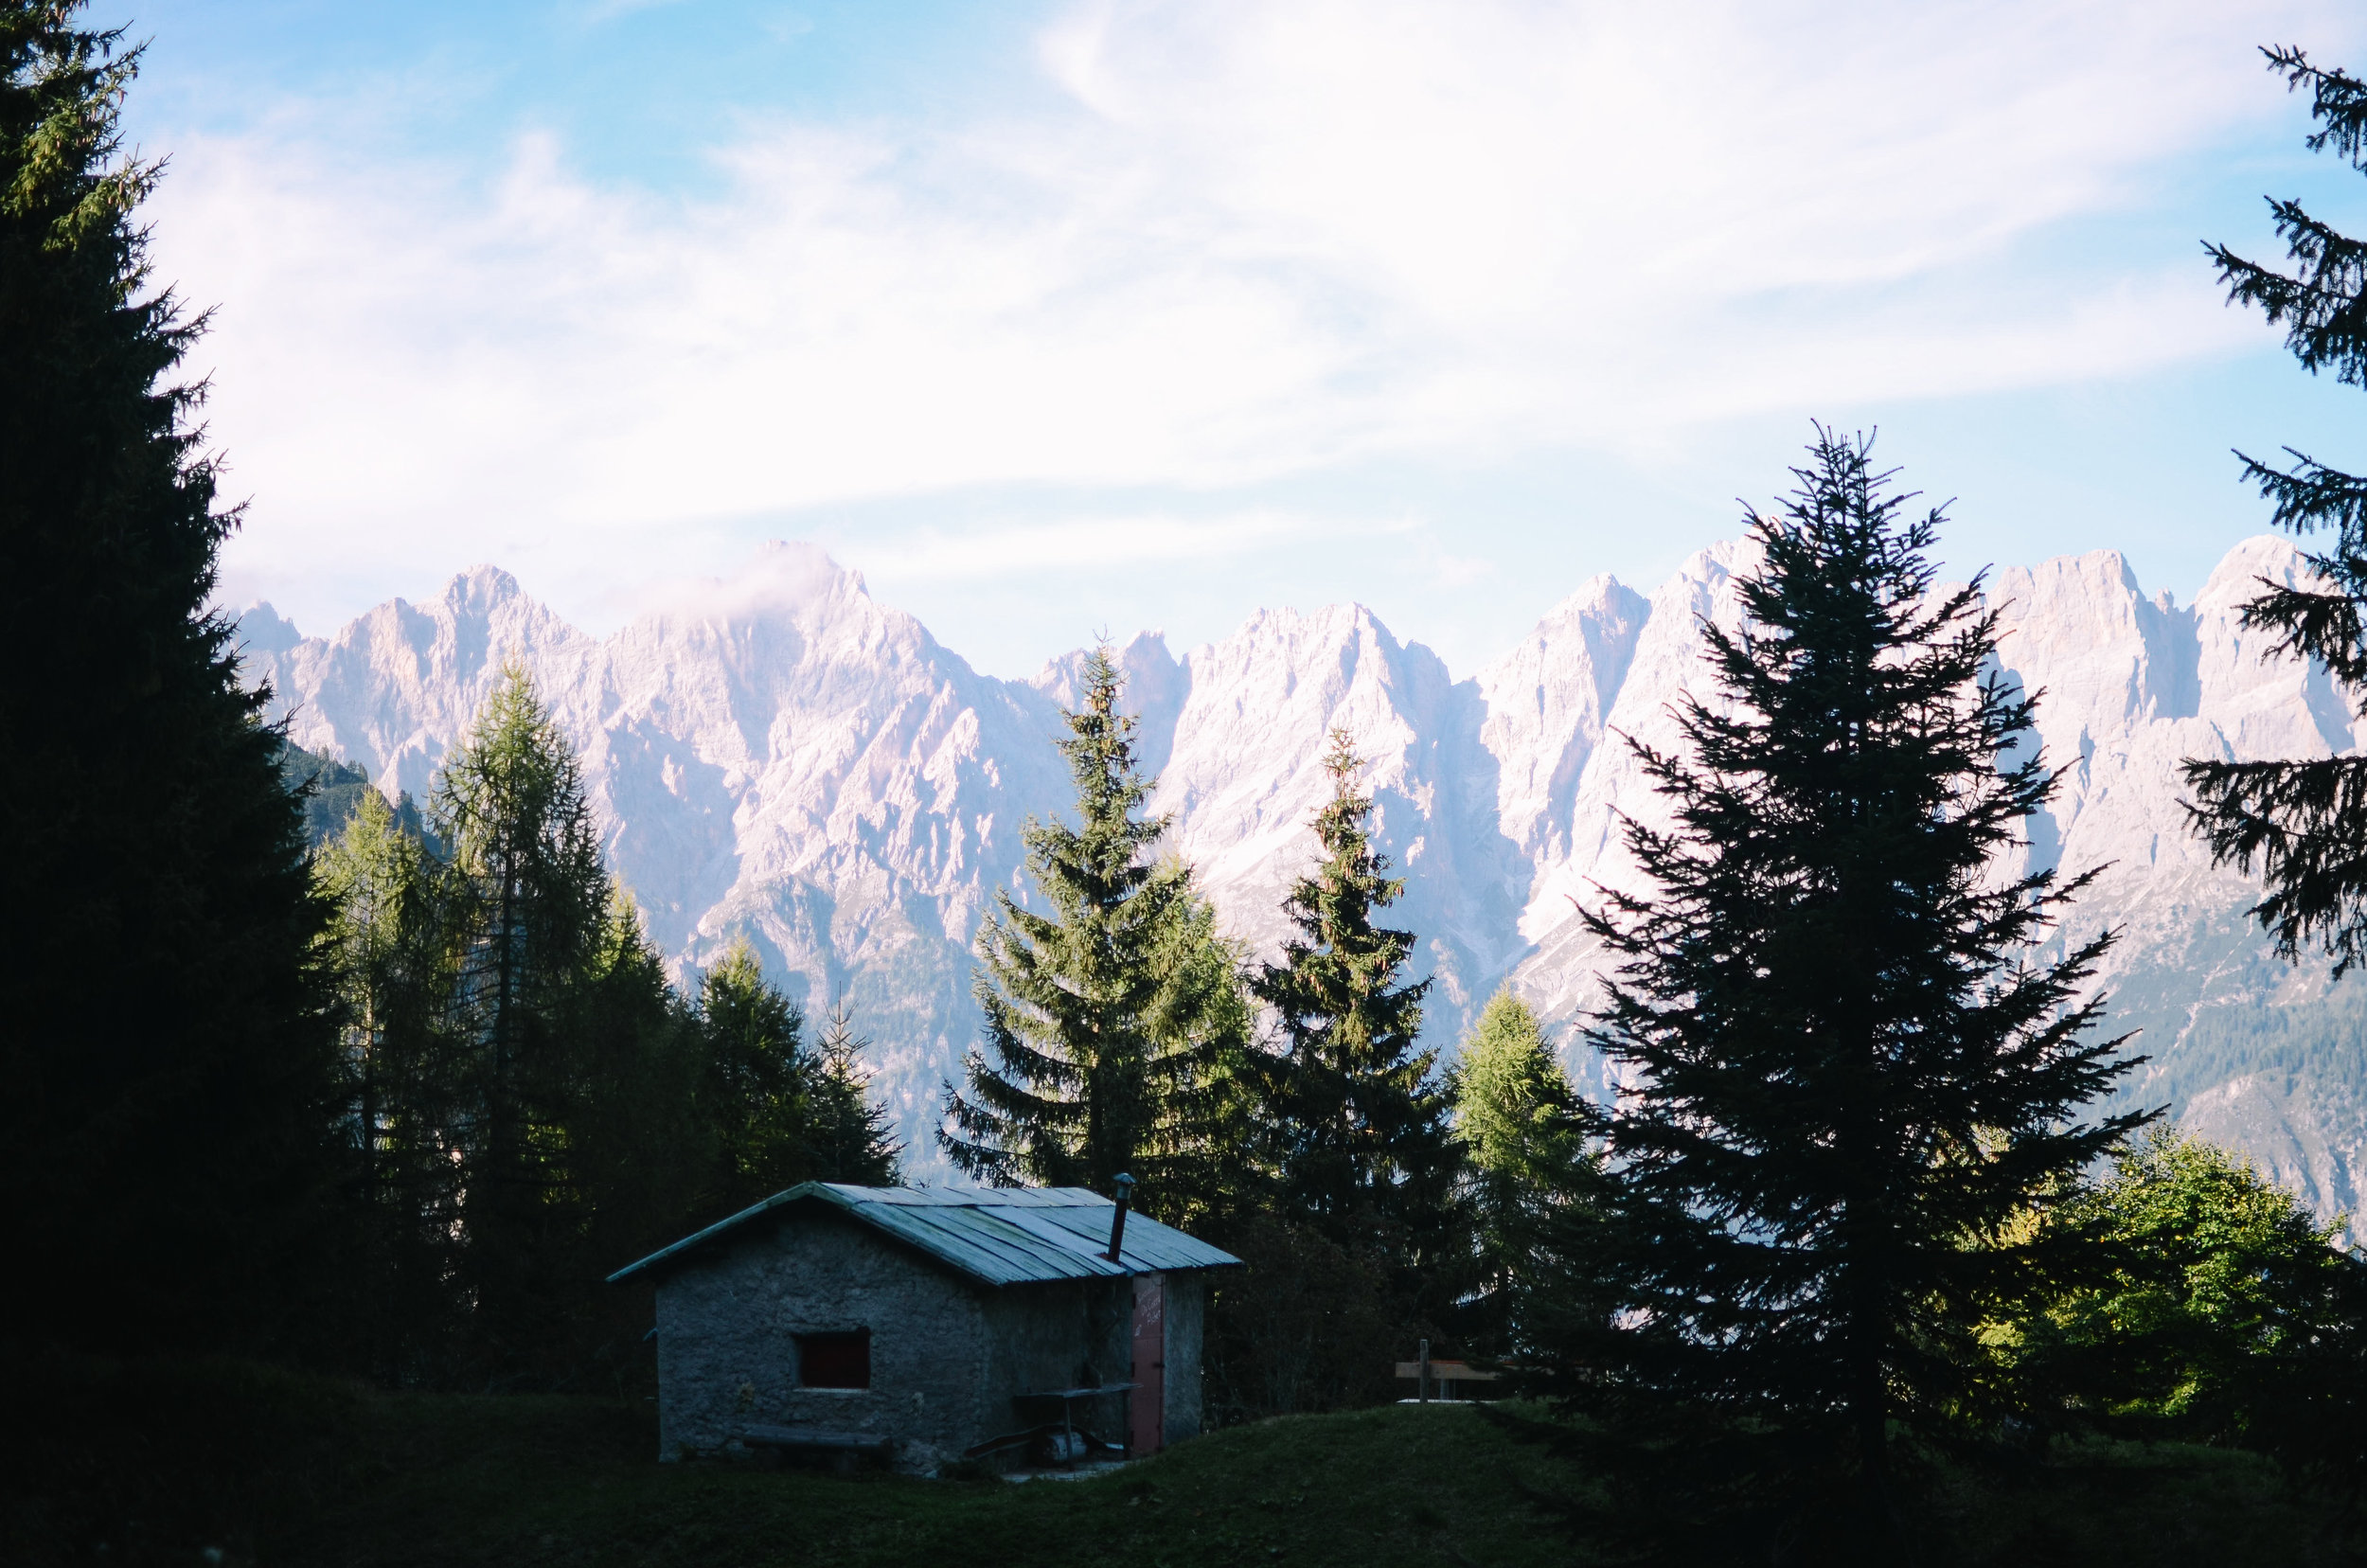 dolomites-why-the-italian-alps-should-be-your-next-mountain-adventure- travel-blog-9.jpg